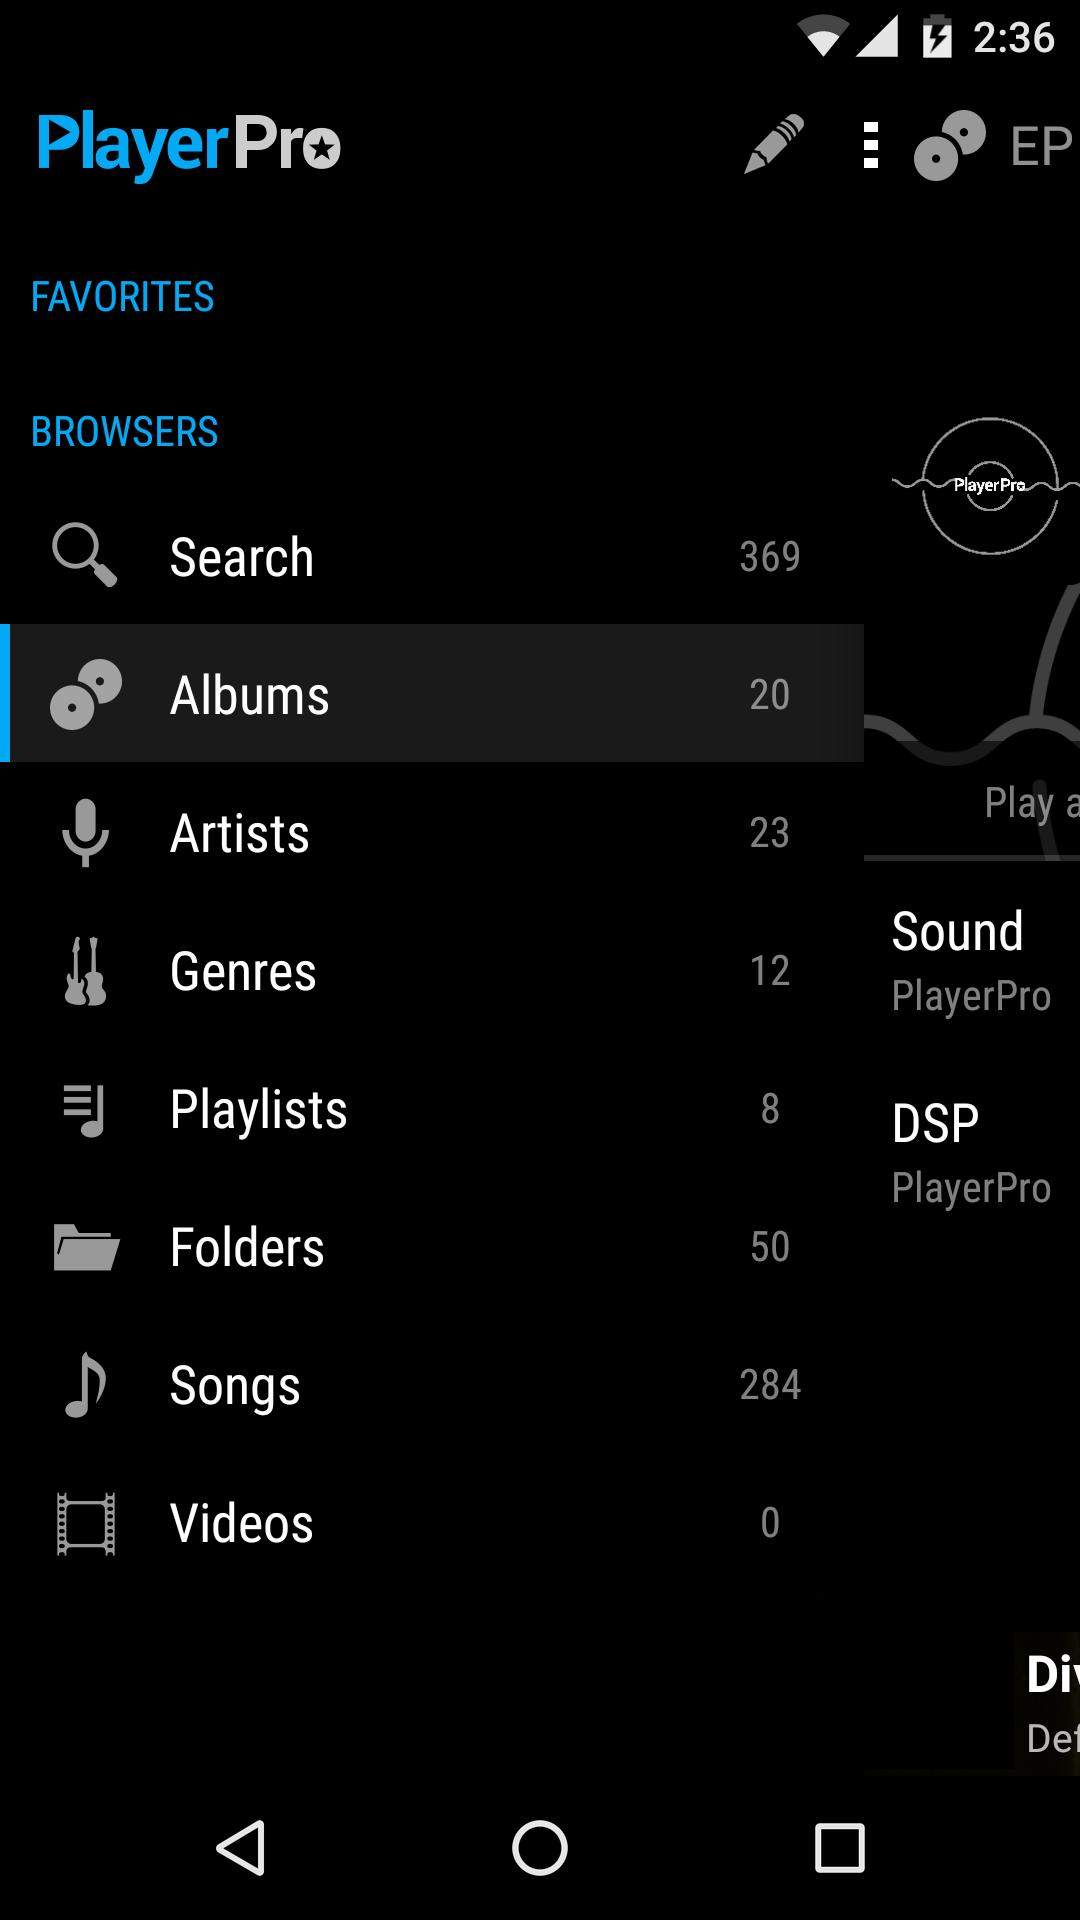 Skin for PlayerPro KK for Android - APK Download